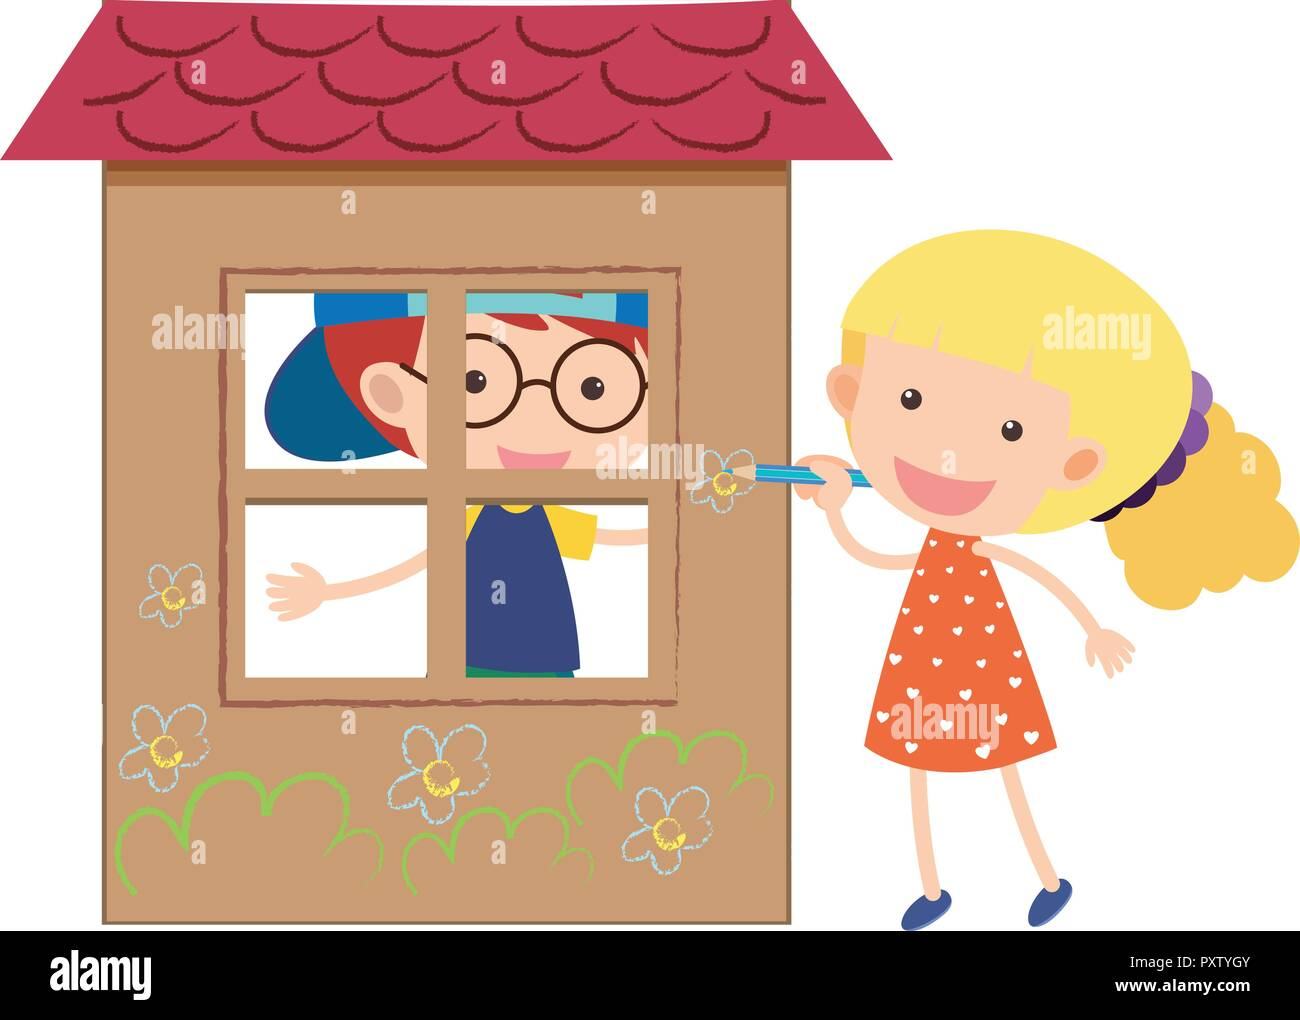 Two kids playing in the playhouse illustration - Stock Vector